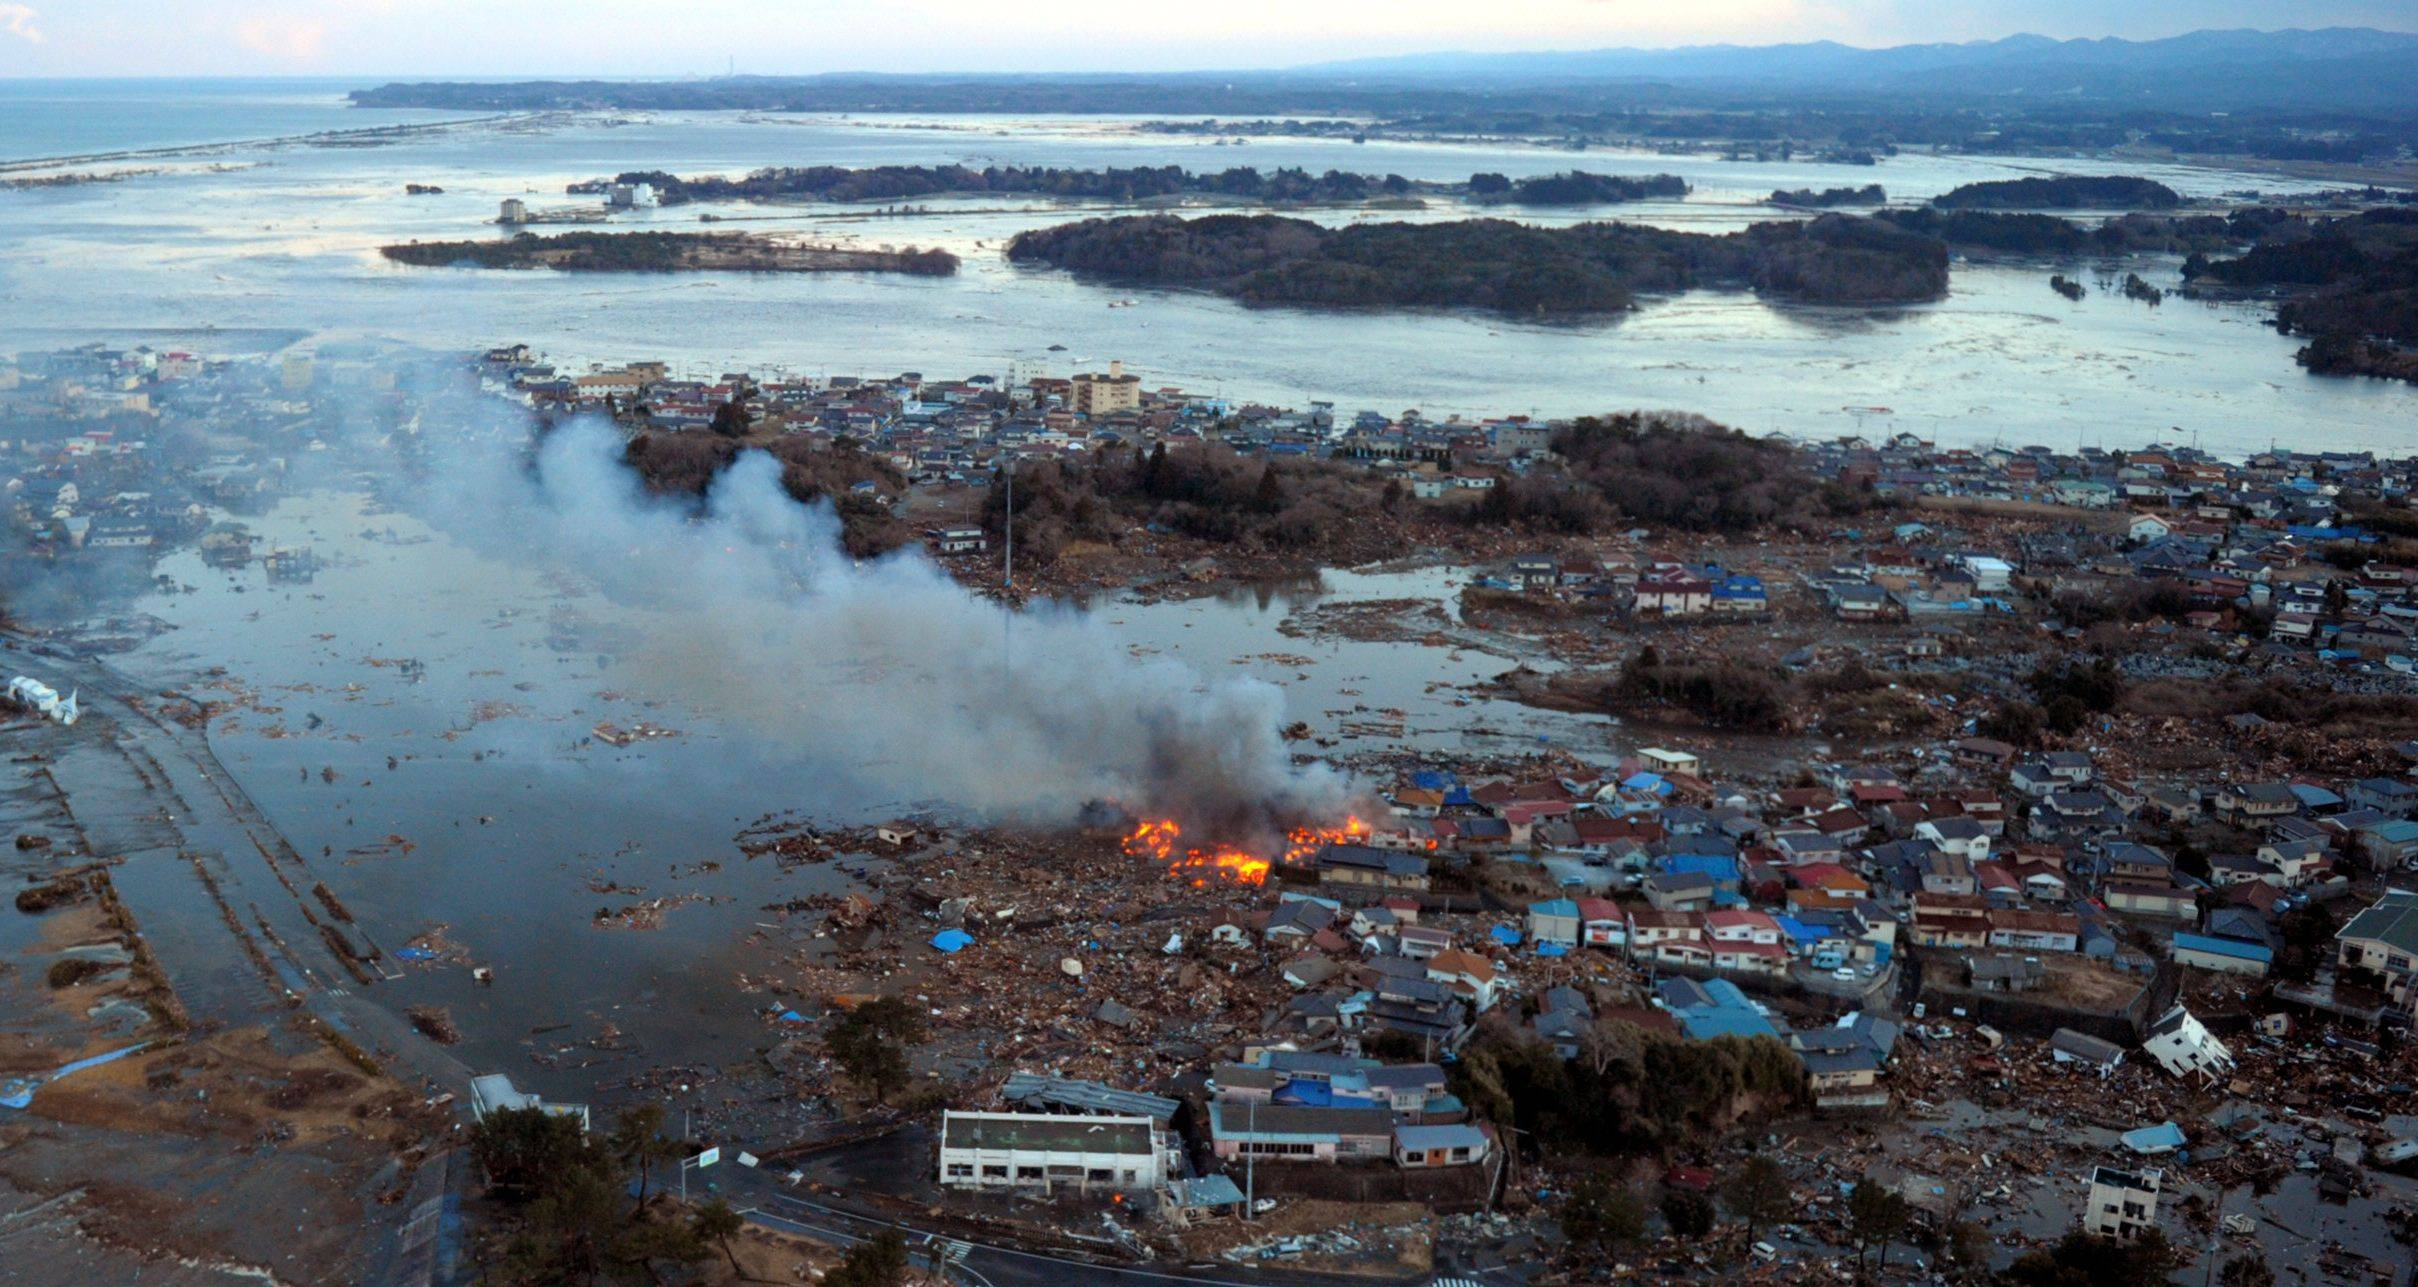 Smoke billows from houses in Natori, northern Japan, after the area was hit by a powerful earthquake and a tsunami on Friday March 11, 2011.